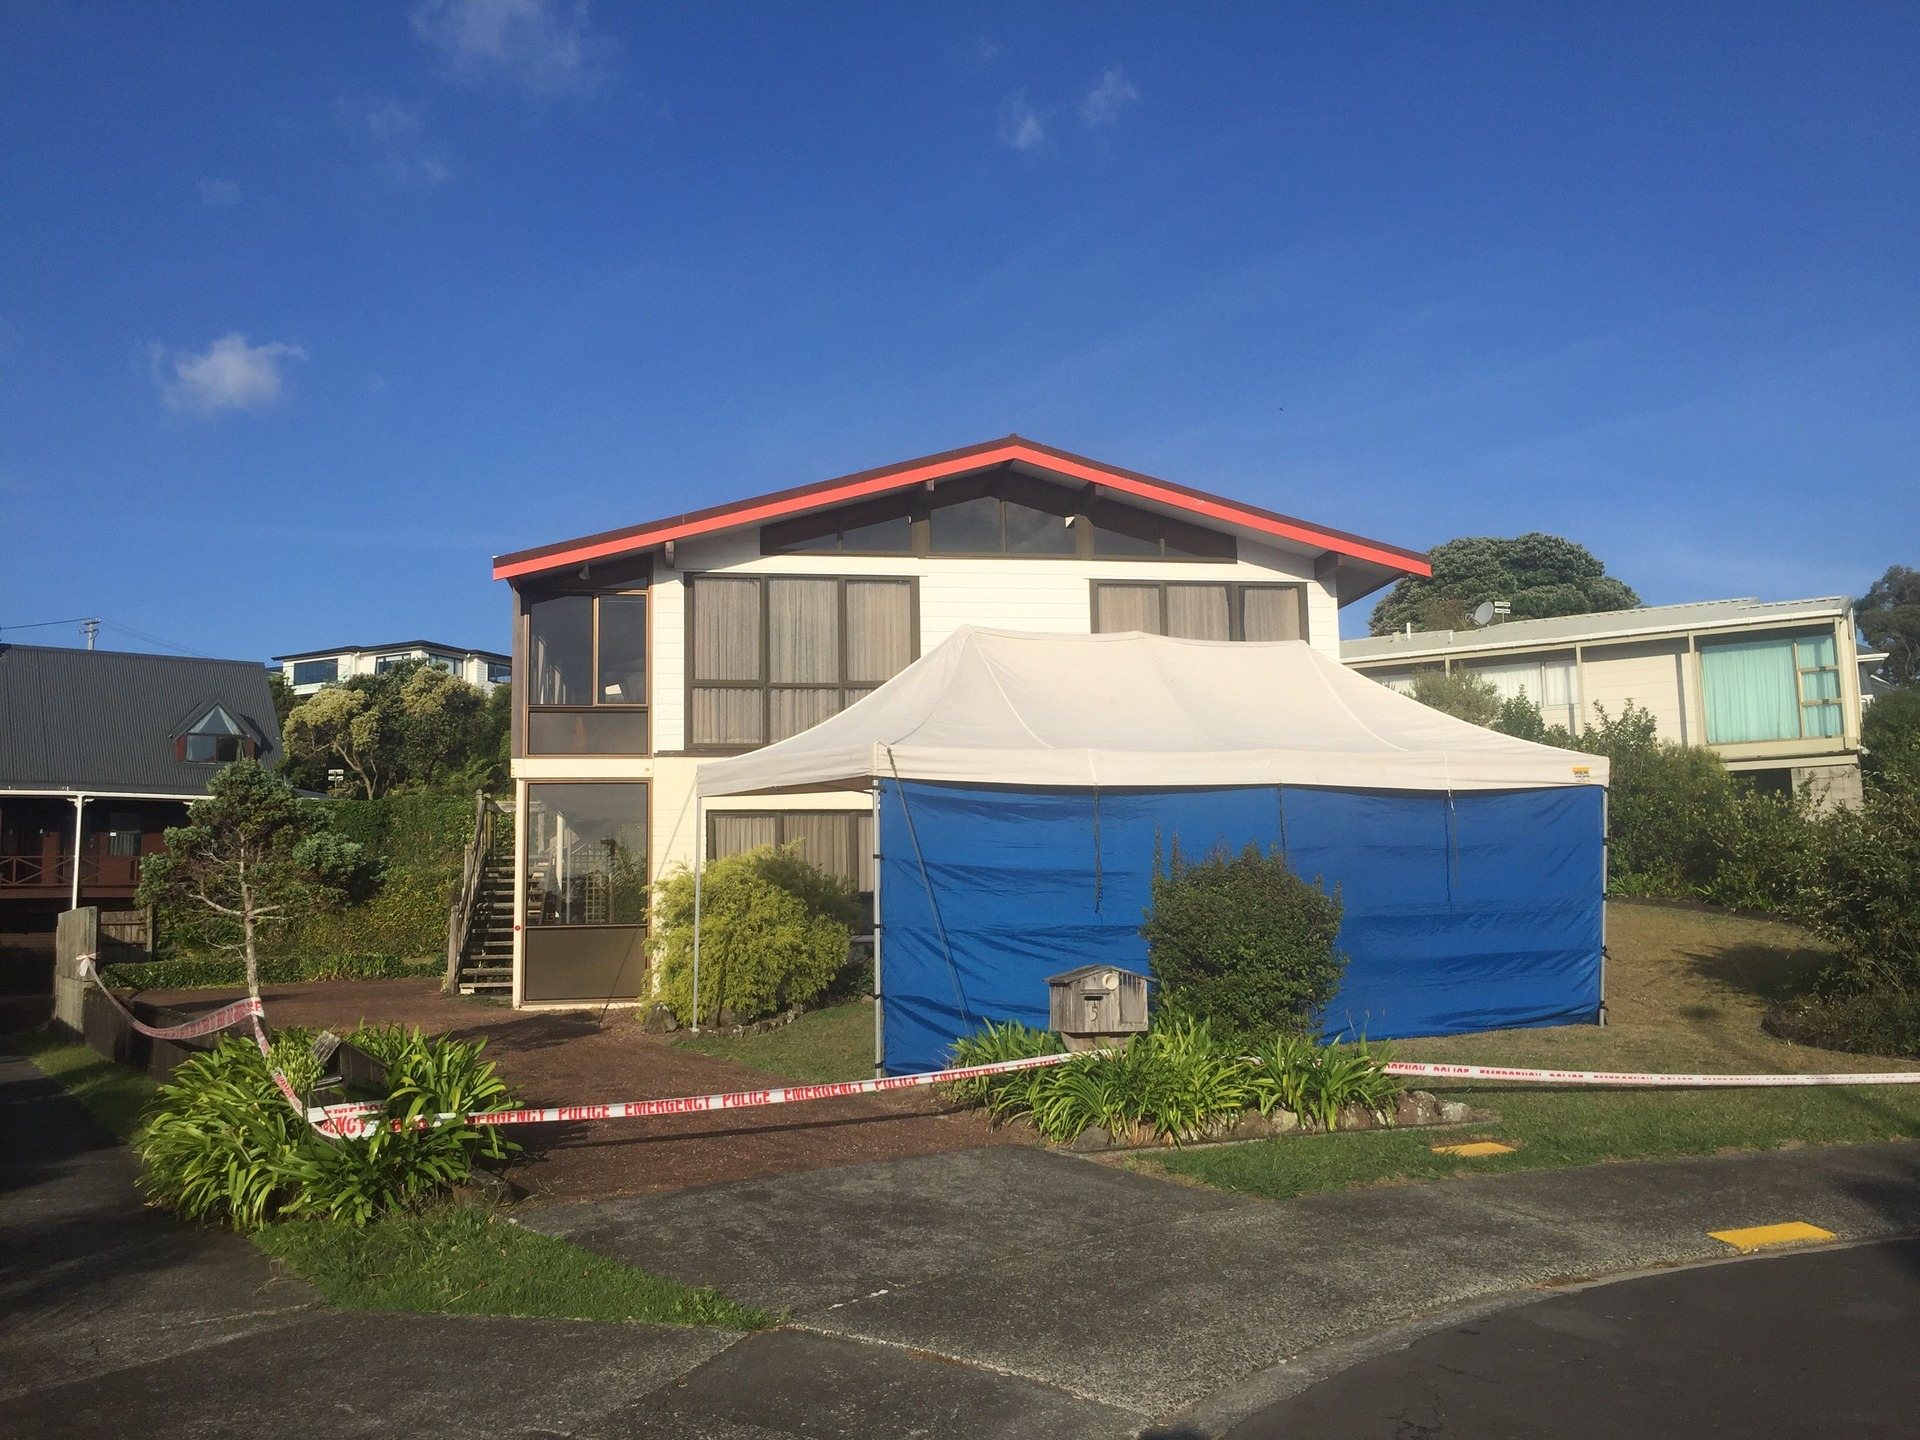 Auckland police investigating serious assault after elderly man attacked in Mount Roskill